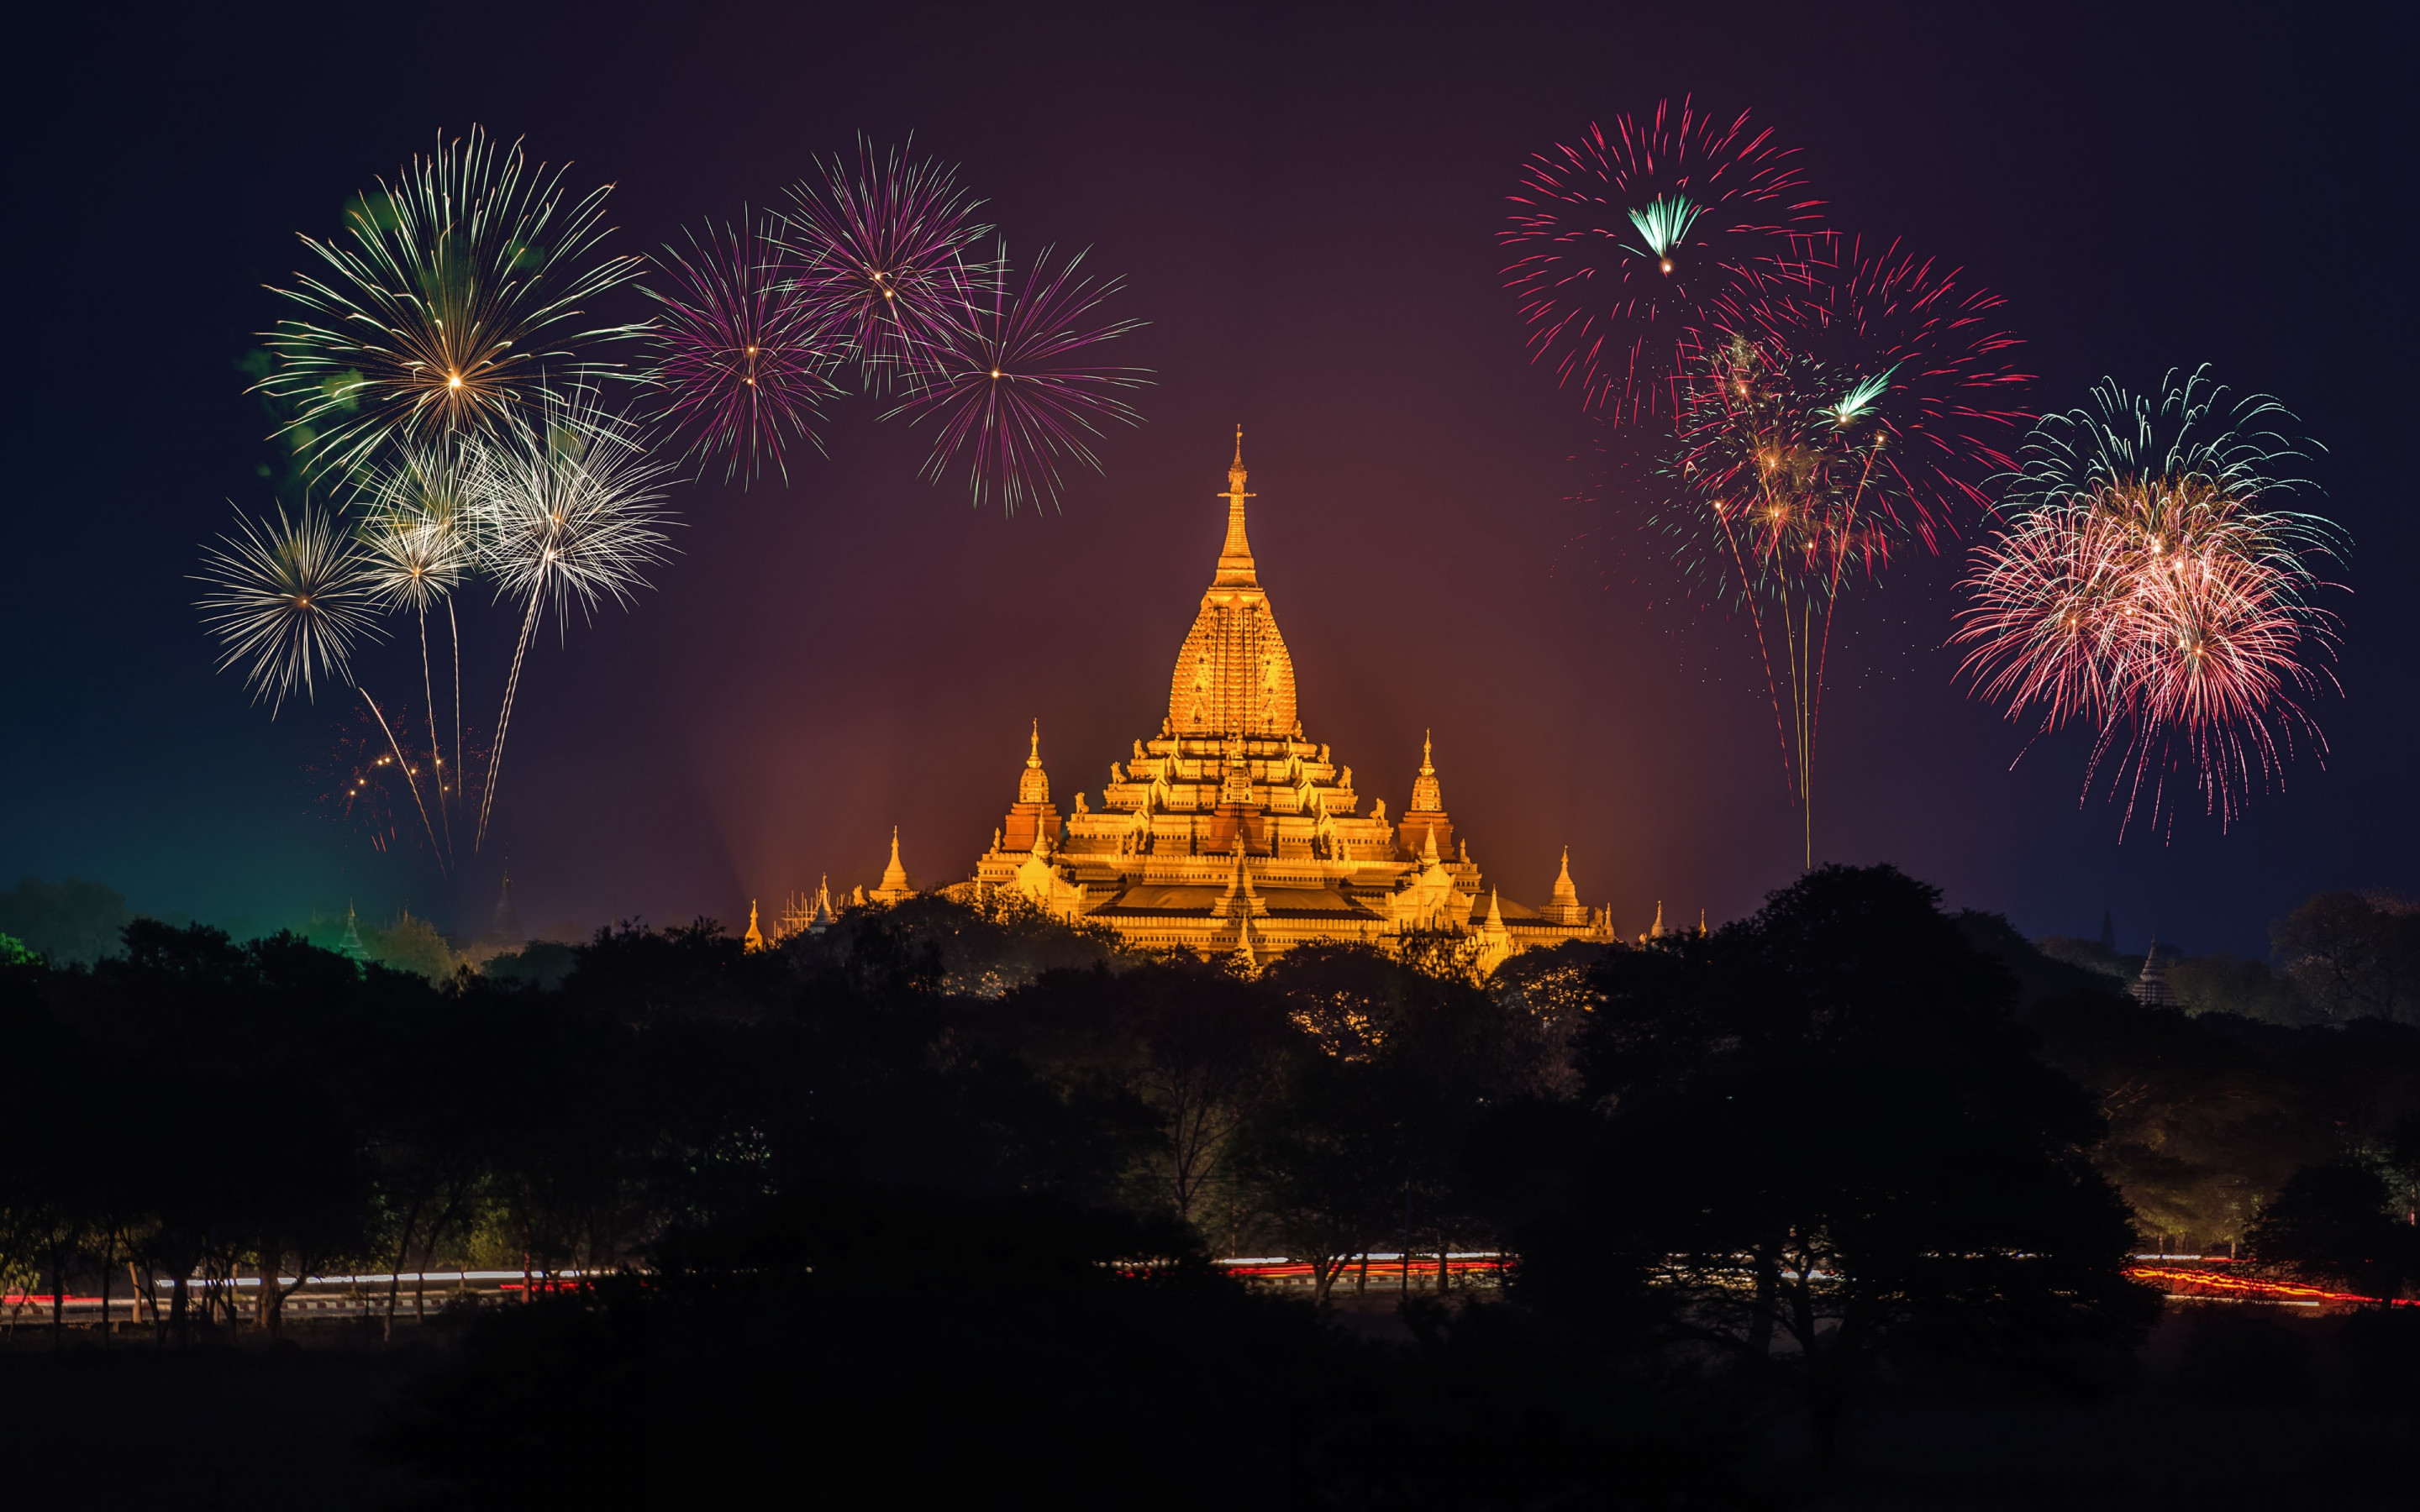 Fireworks above Ananda Phato temple | 2880x1800 wallpaper